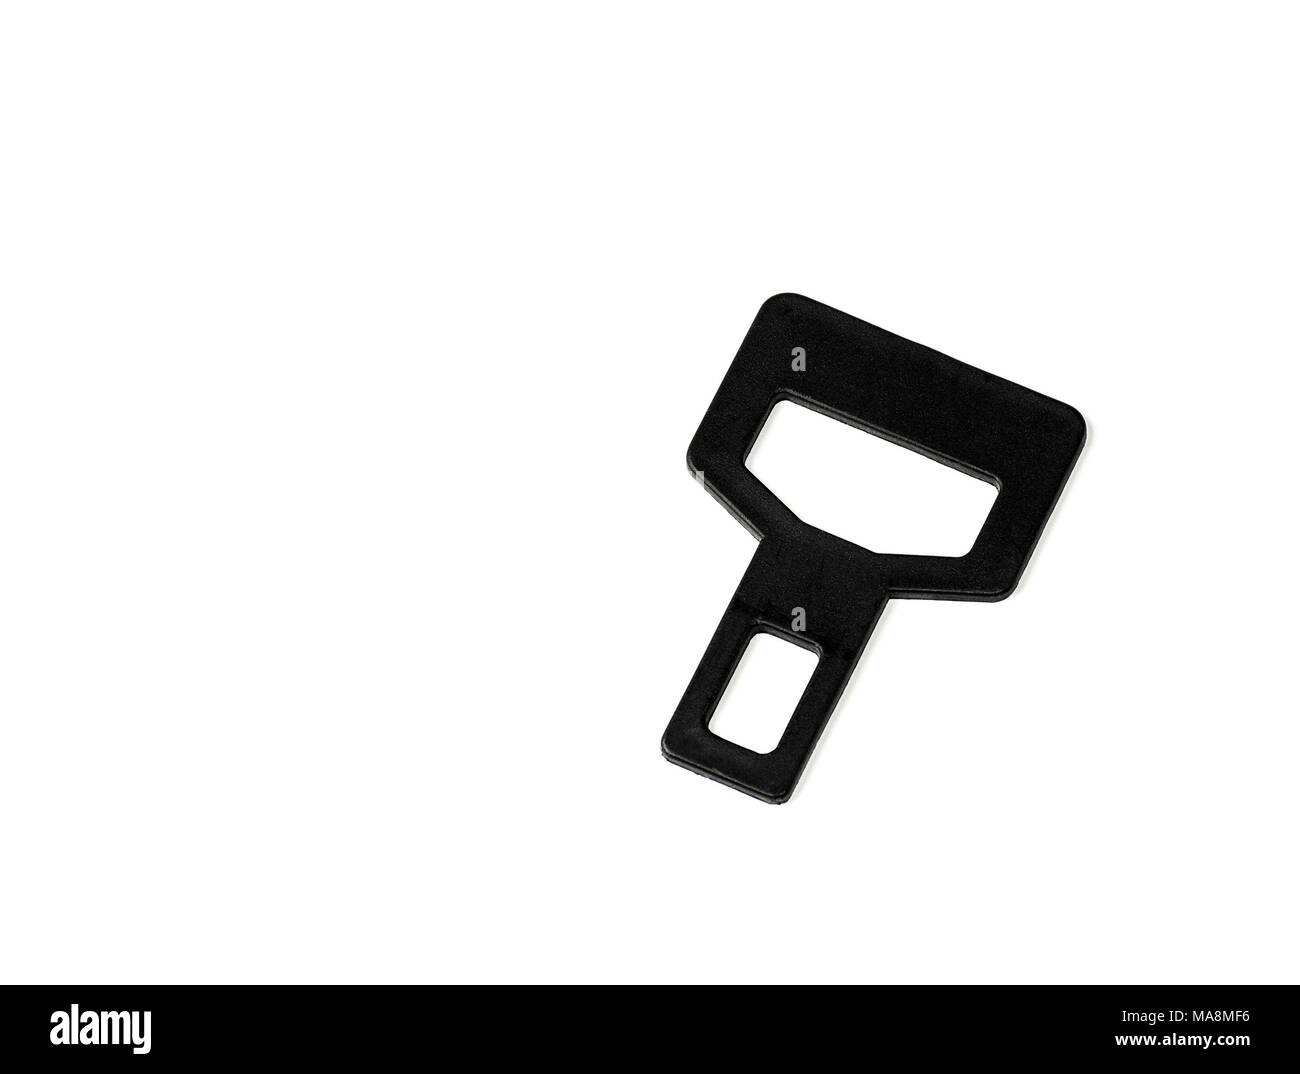 False Car Safety Belt Buckle isolated on white background, insecurity, unsecured person in vehicle, studio shot, copy space, - Stock Image